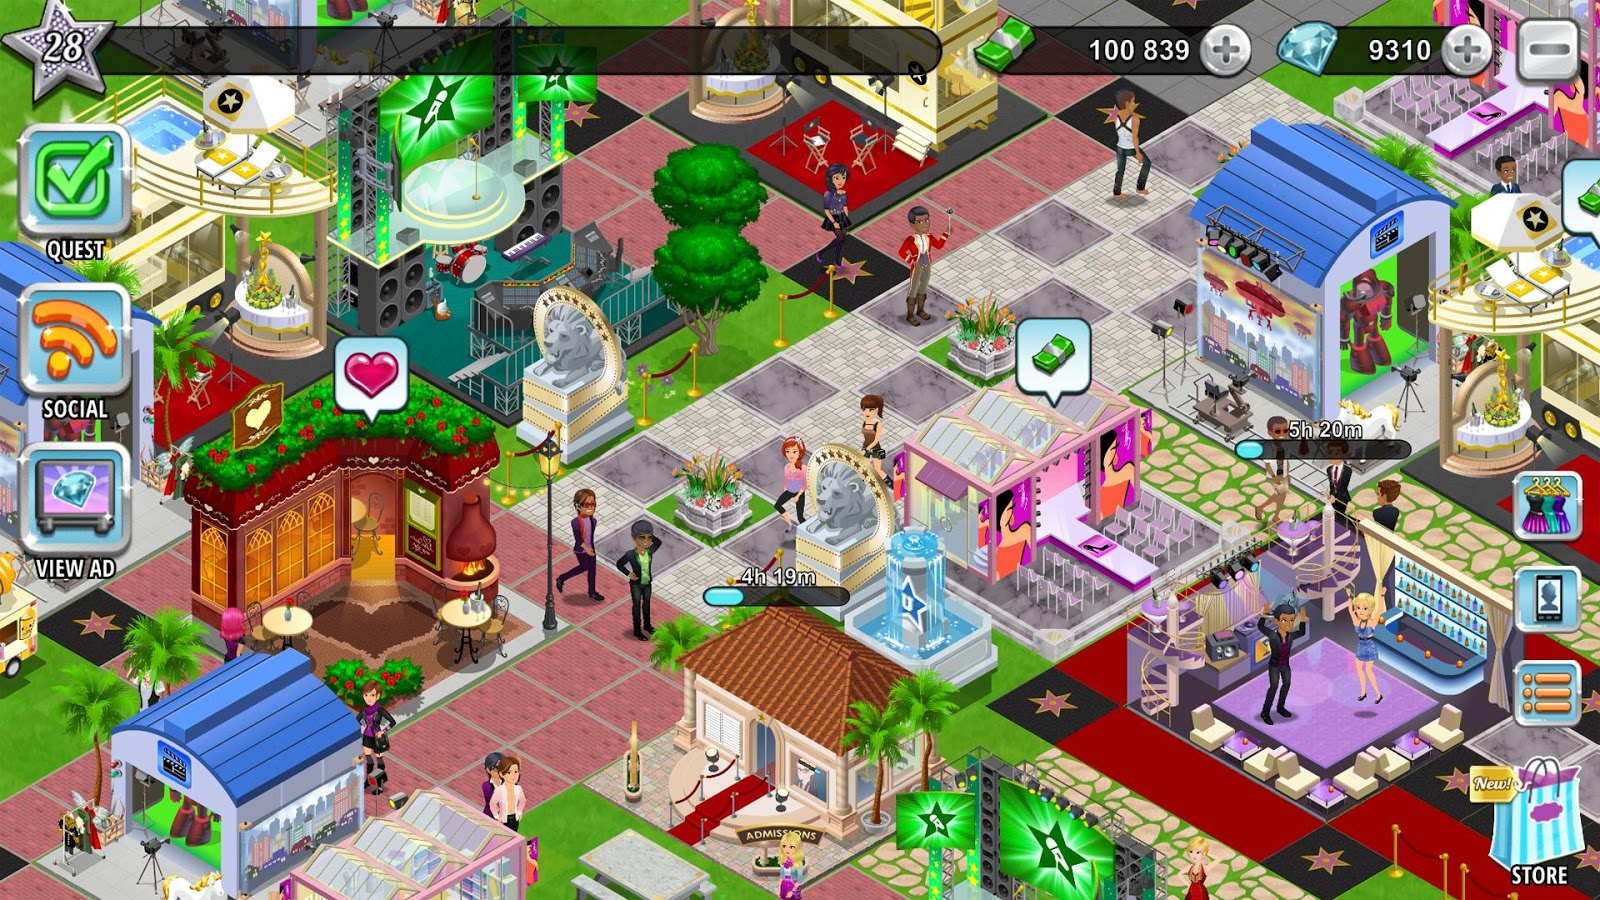 dating on hollywood u app Hollywood u: rising stars is a game released by pixelberry studios, and it focuses on the fictional hollywood university,  the fandom app.